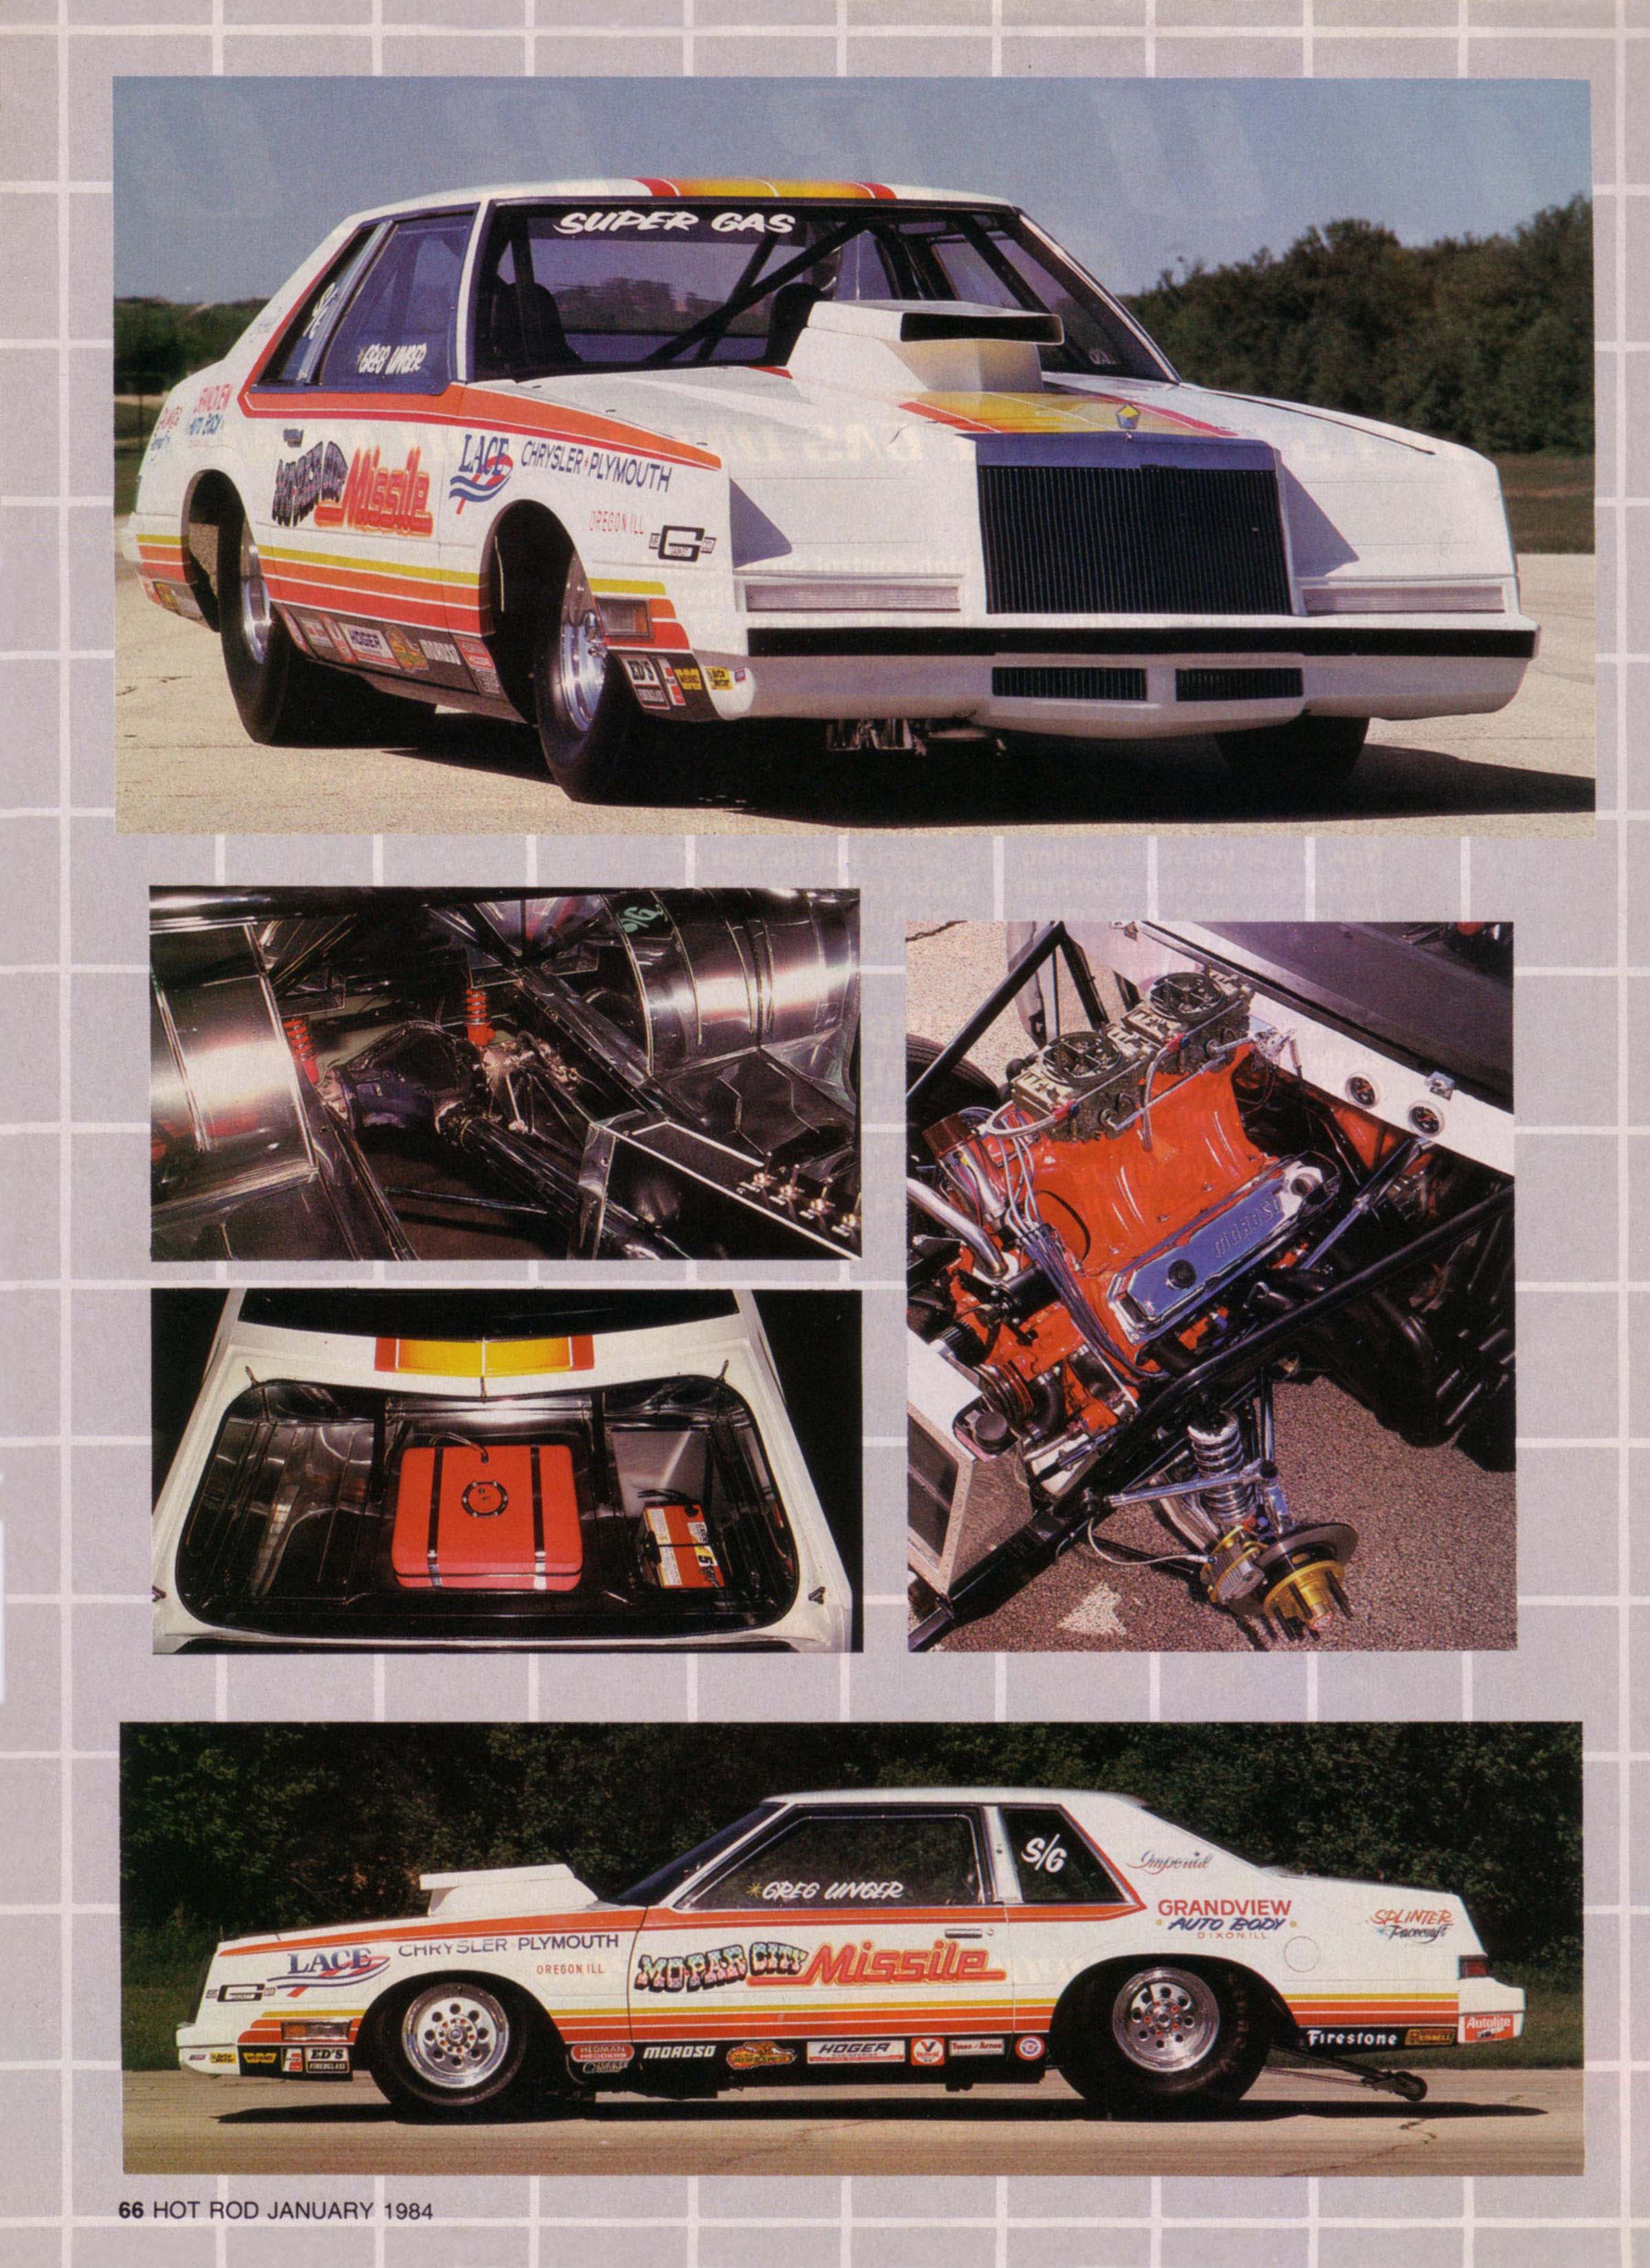 MoPar City Missile - 1983 Chrysler Imperial from Hot Rod Magazine